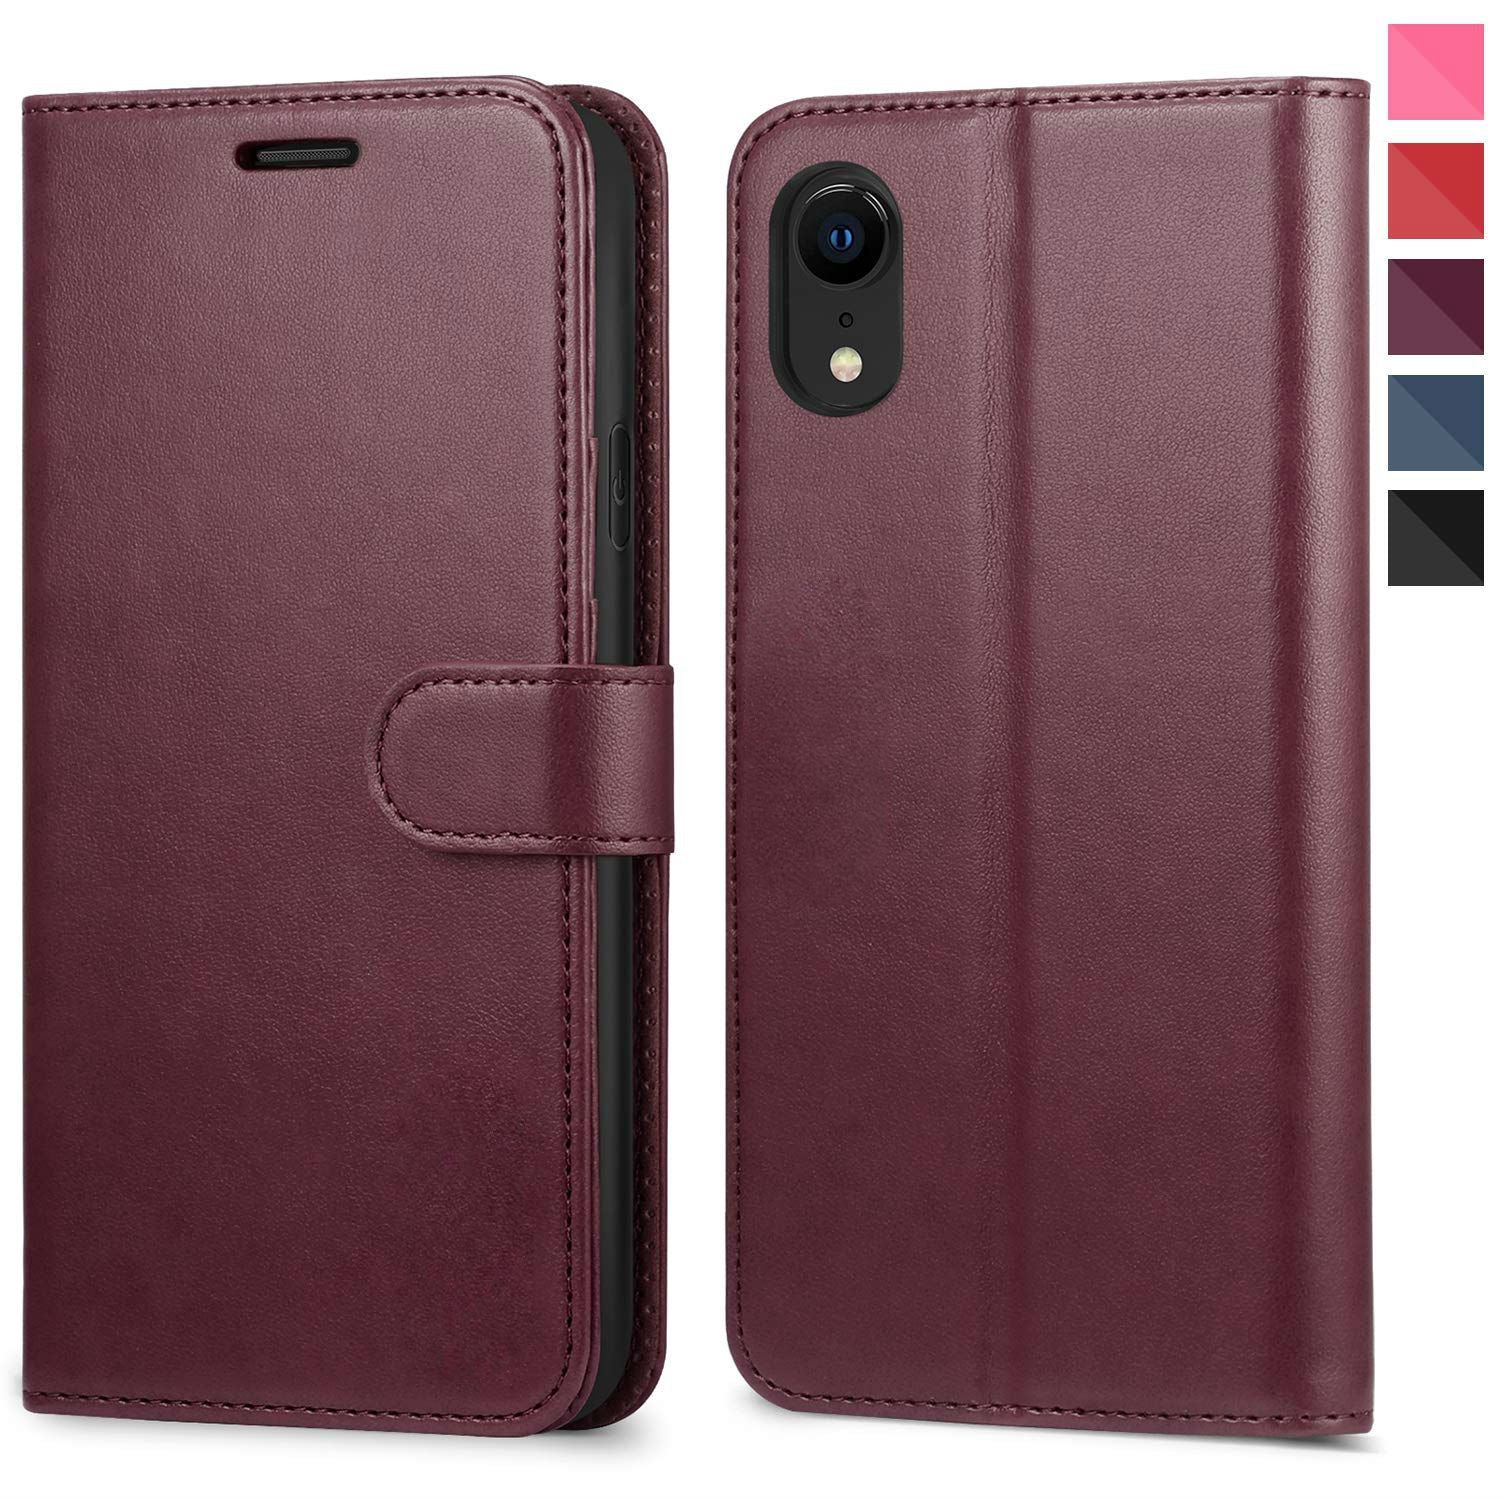 Leather Wallet Magnetic Flip Case with strap Apple iPhone 6 or 6 Plus